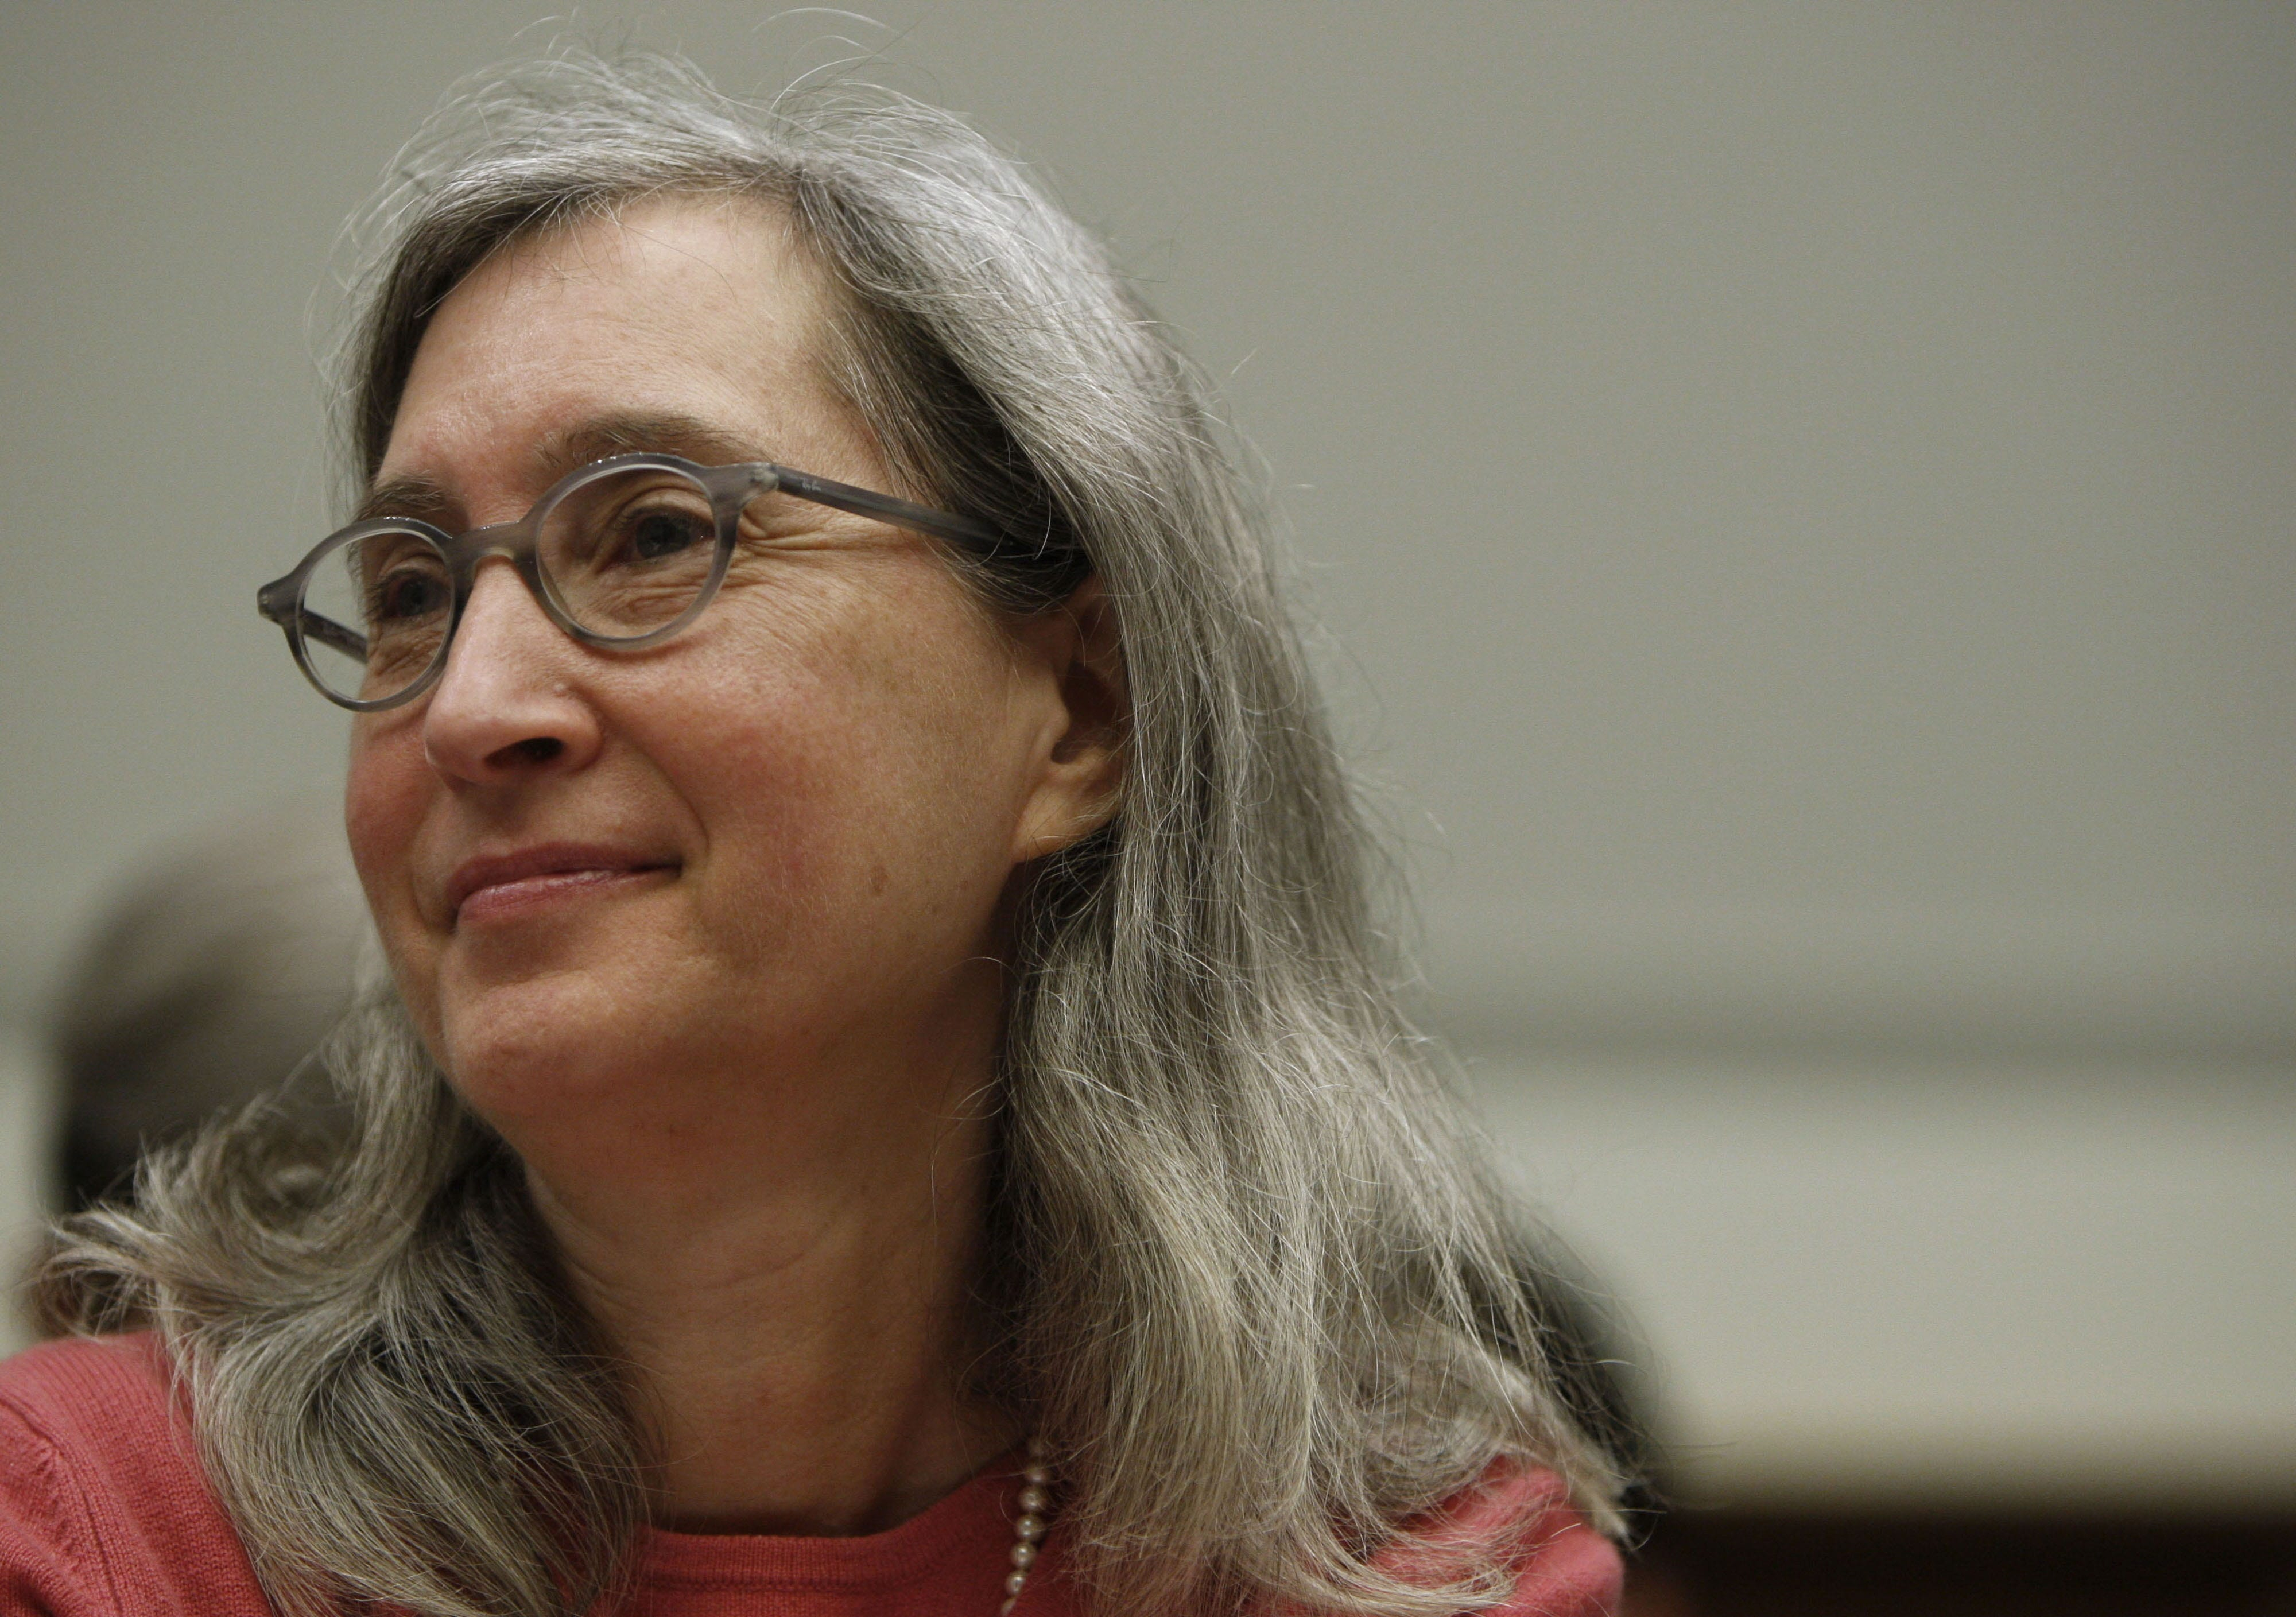 Nell Minow is vice chair of ValueEdge Advisors, a consulting firm specializing in corporate governance issues.